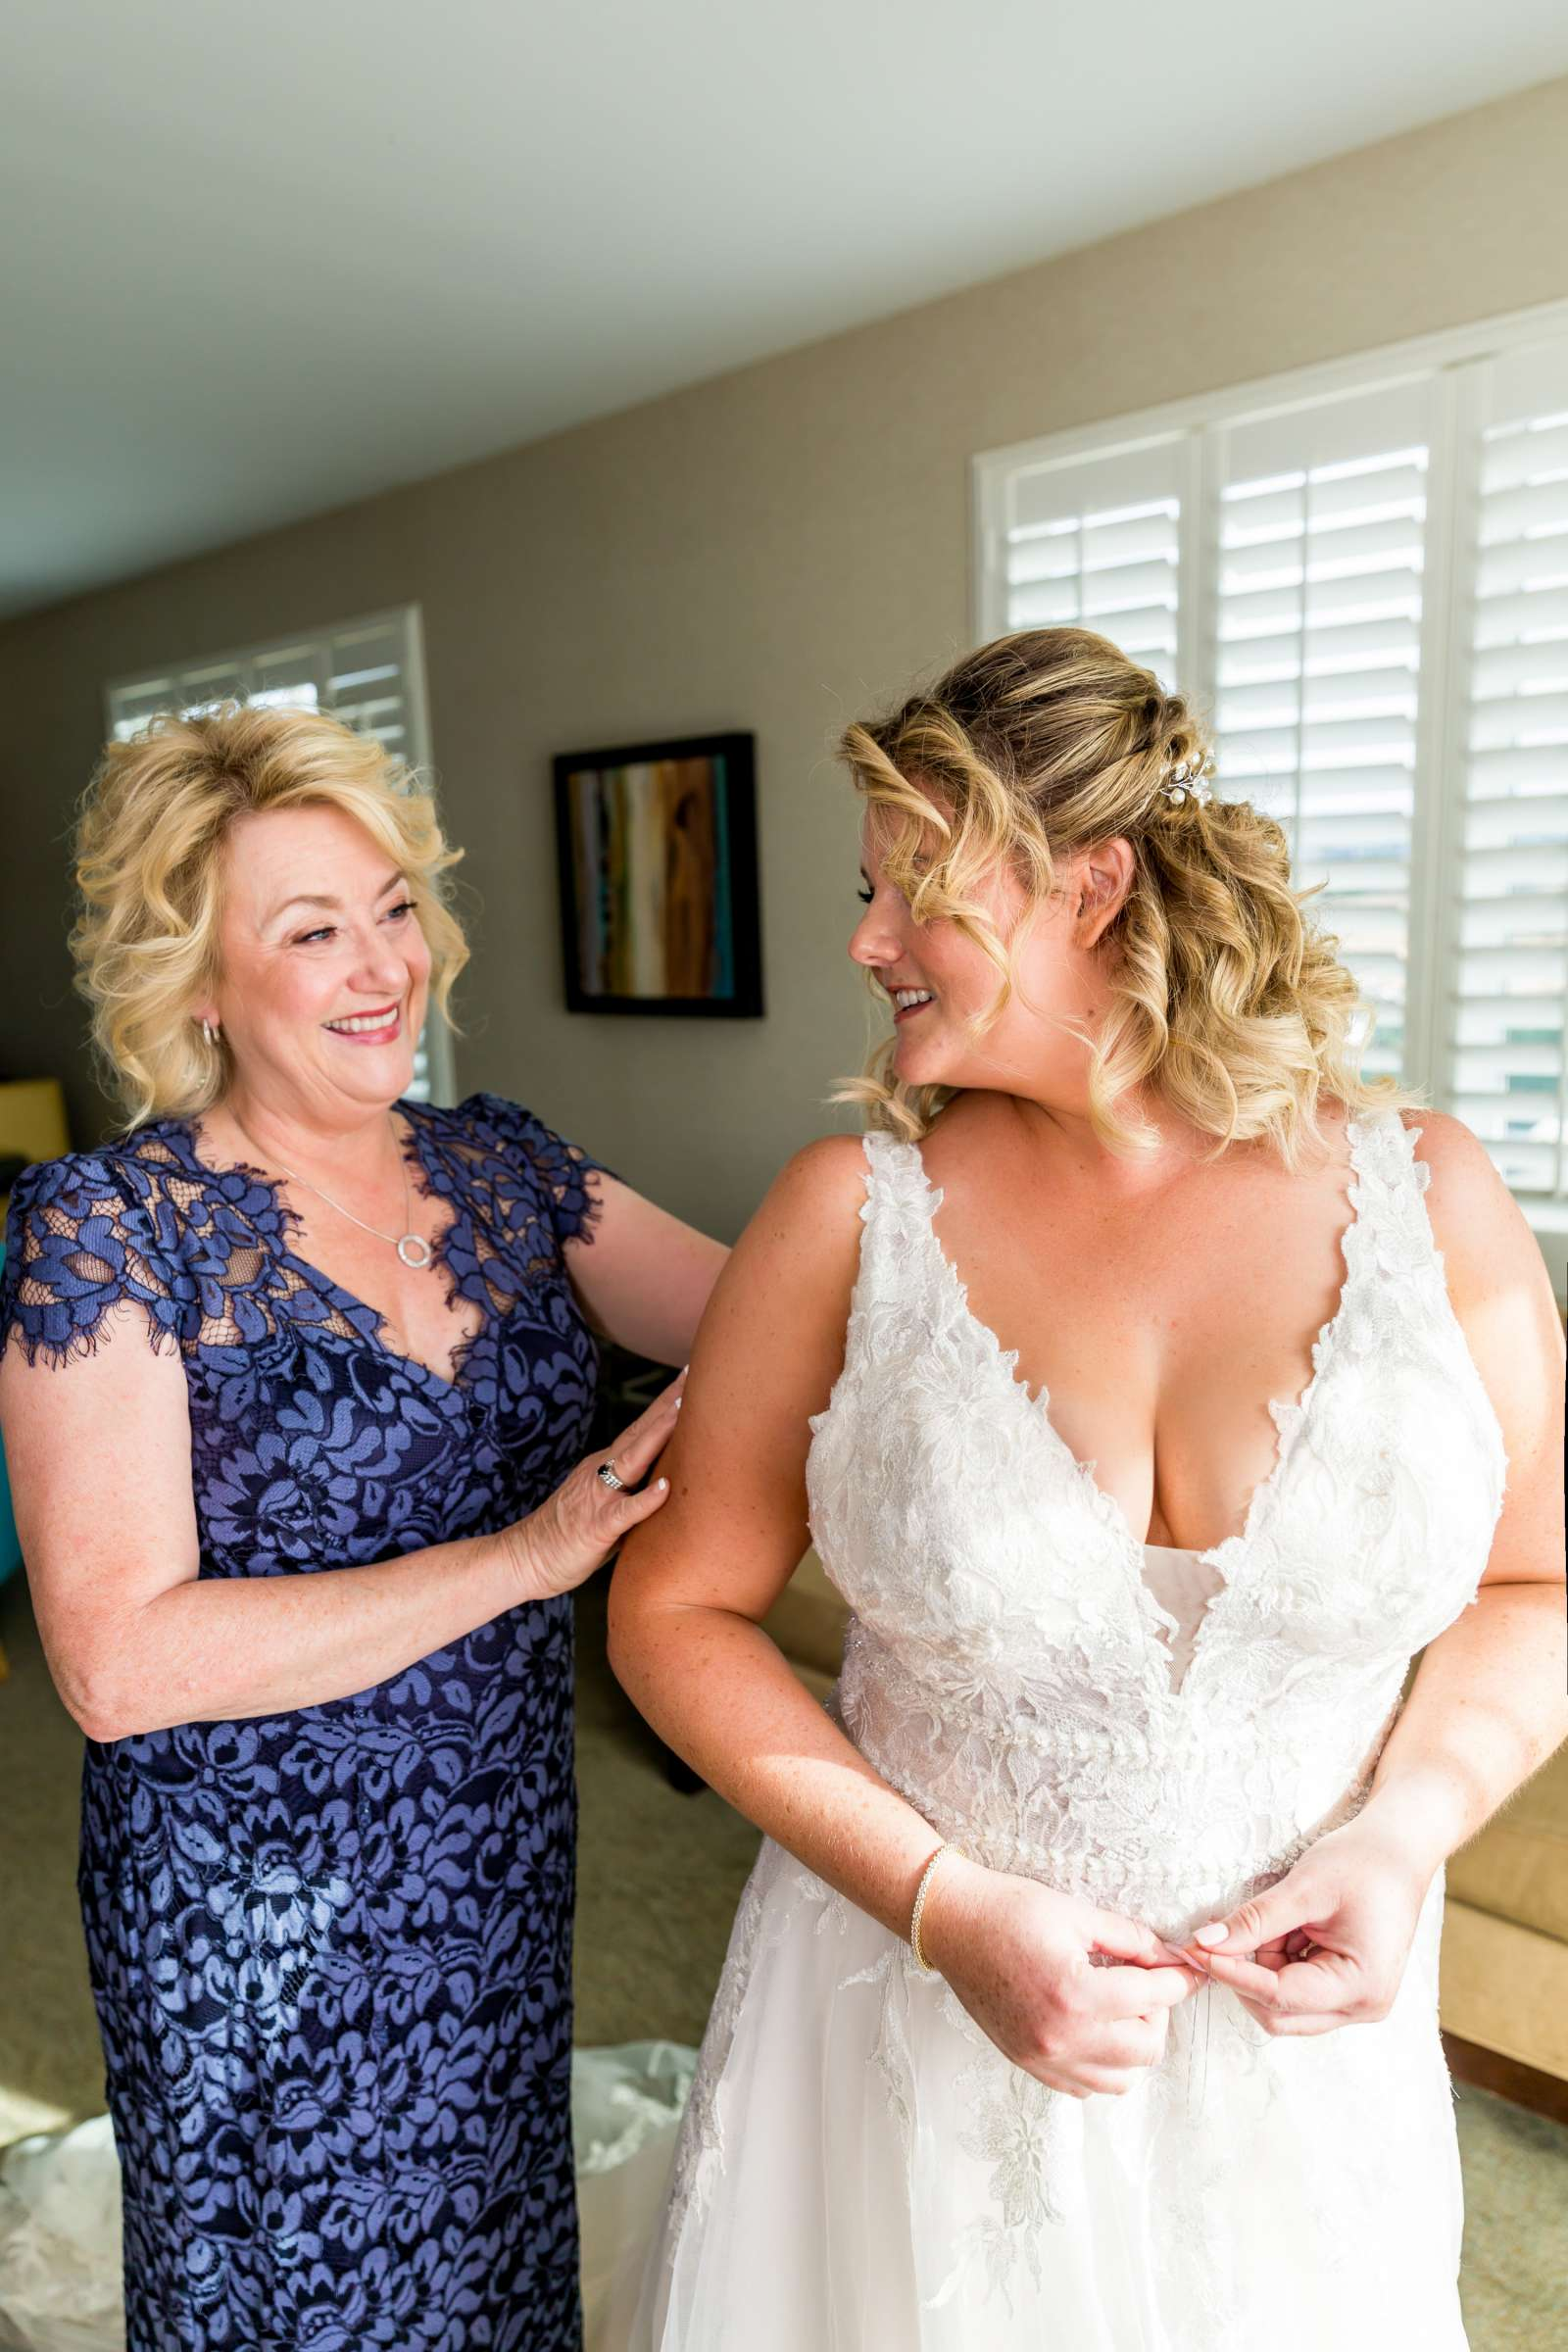 Cape Rey Carlsbad, A Hilton Resort Wedding, Michelle and Justin Wedding Photo #40 by True Photography